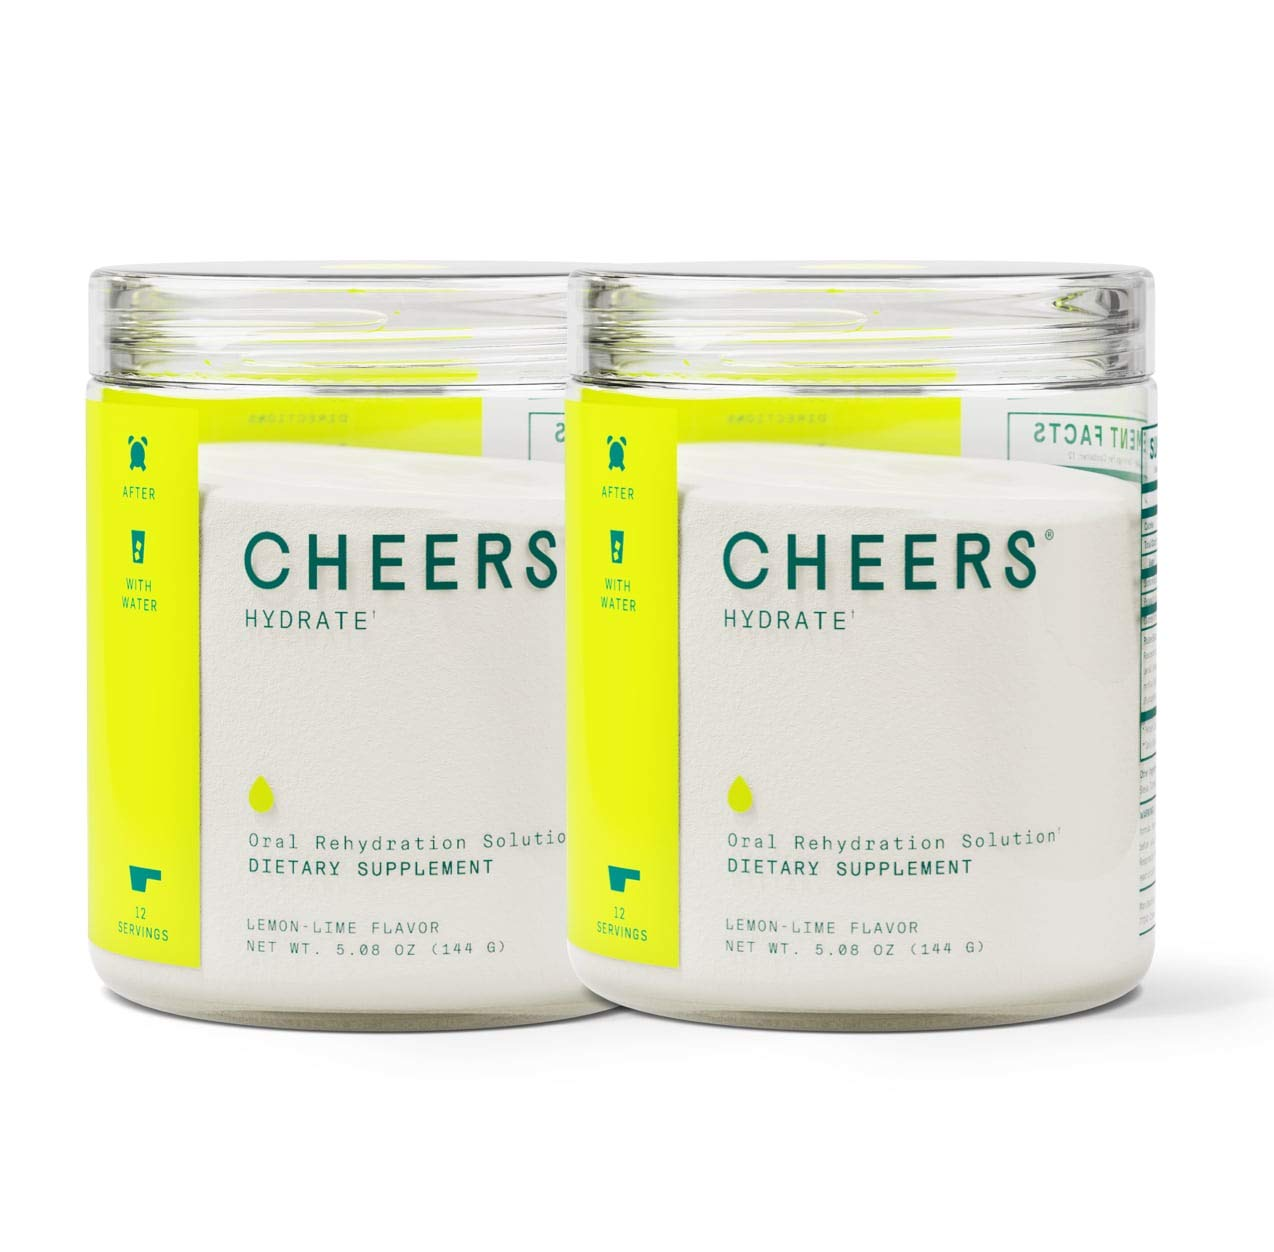 Cheers (Formerly Thrive+) ORS Electrolyte Powder- Electrolyte Supplement & Hydration Powder Hangover Prevention & Cure (24 Servings) - Hydration Electrolyte Supplement - Delicious Lemon/Lime Flavor